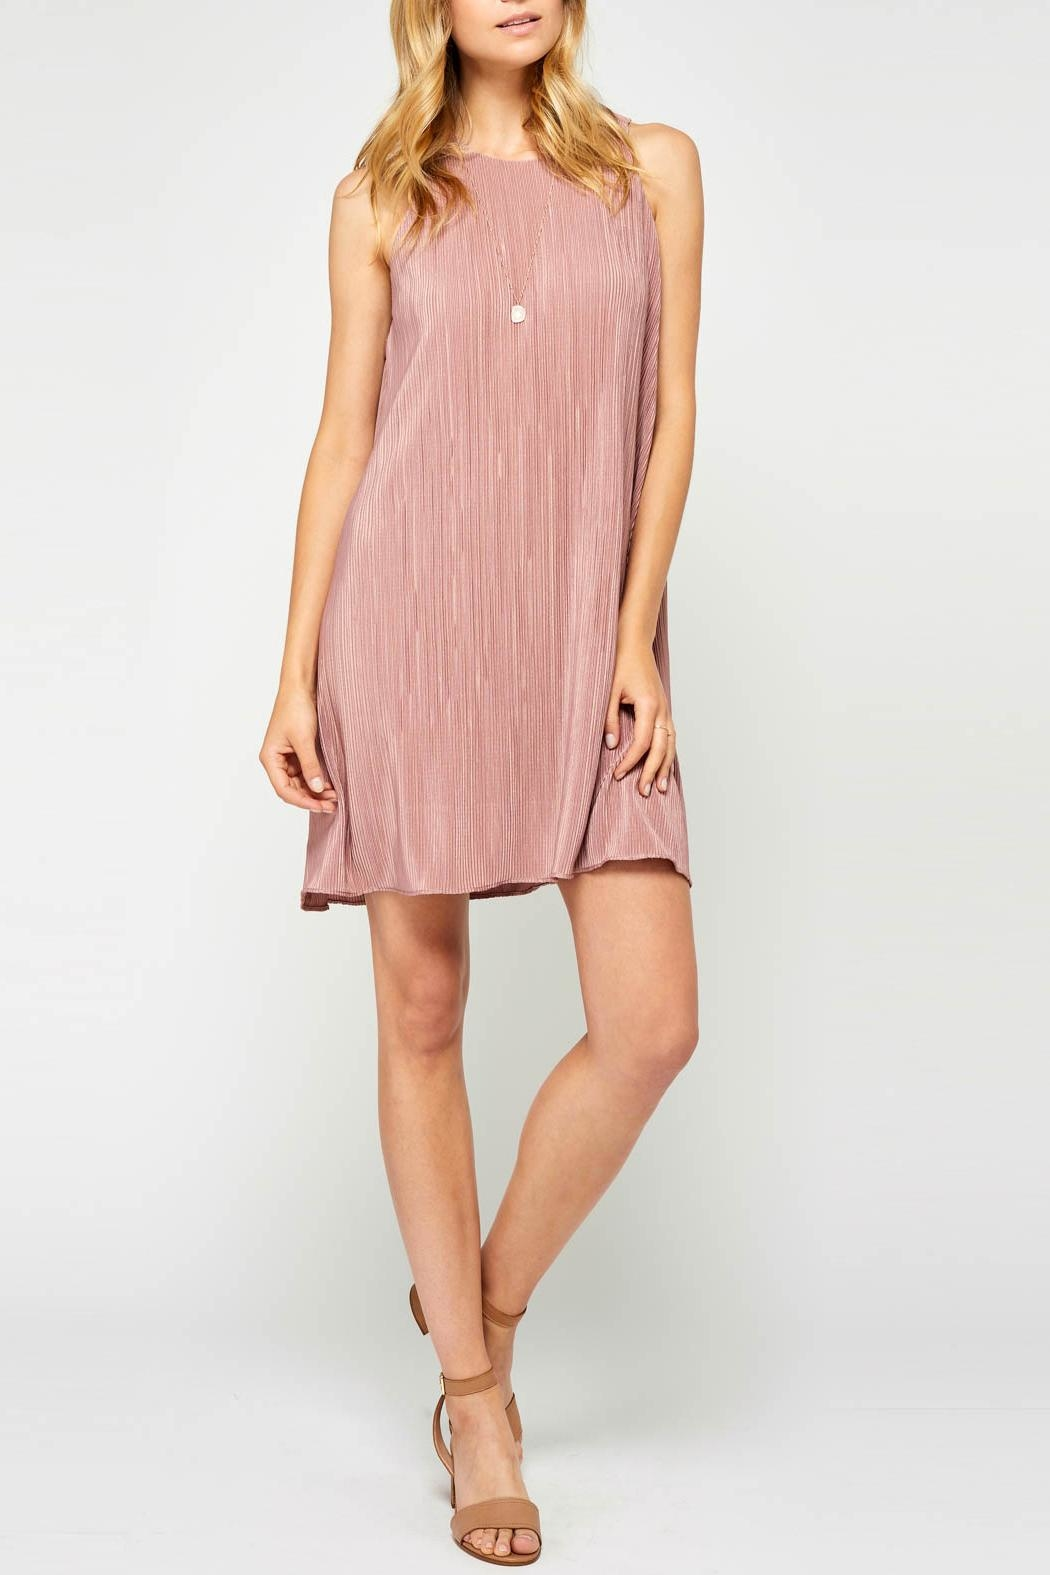 Gentle Fawn Renee Dress - Front Cropped Image